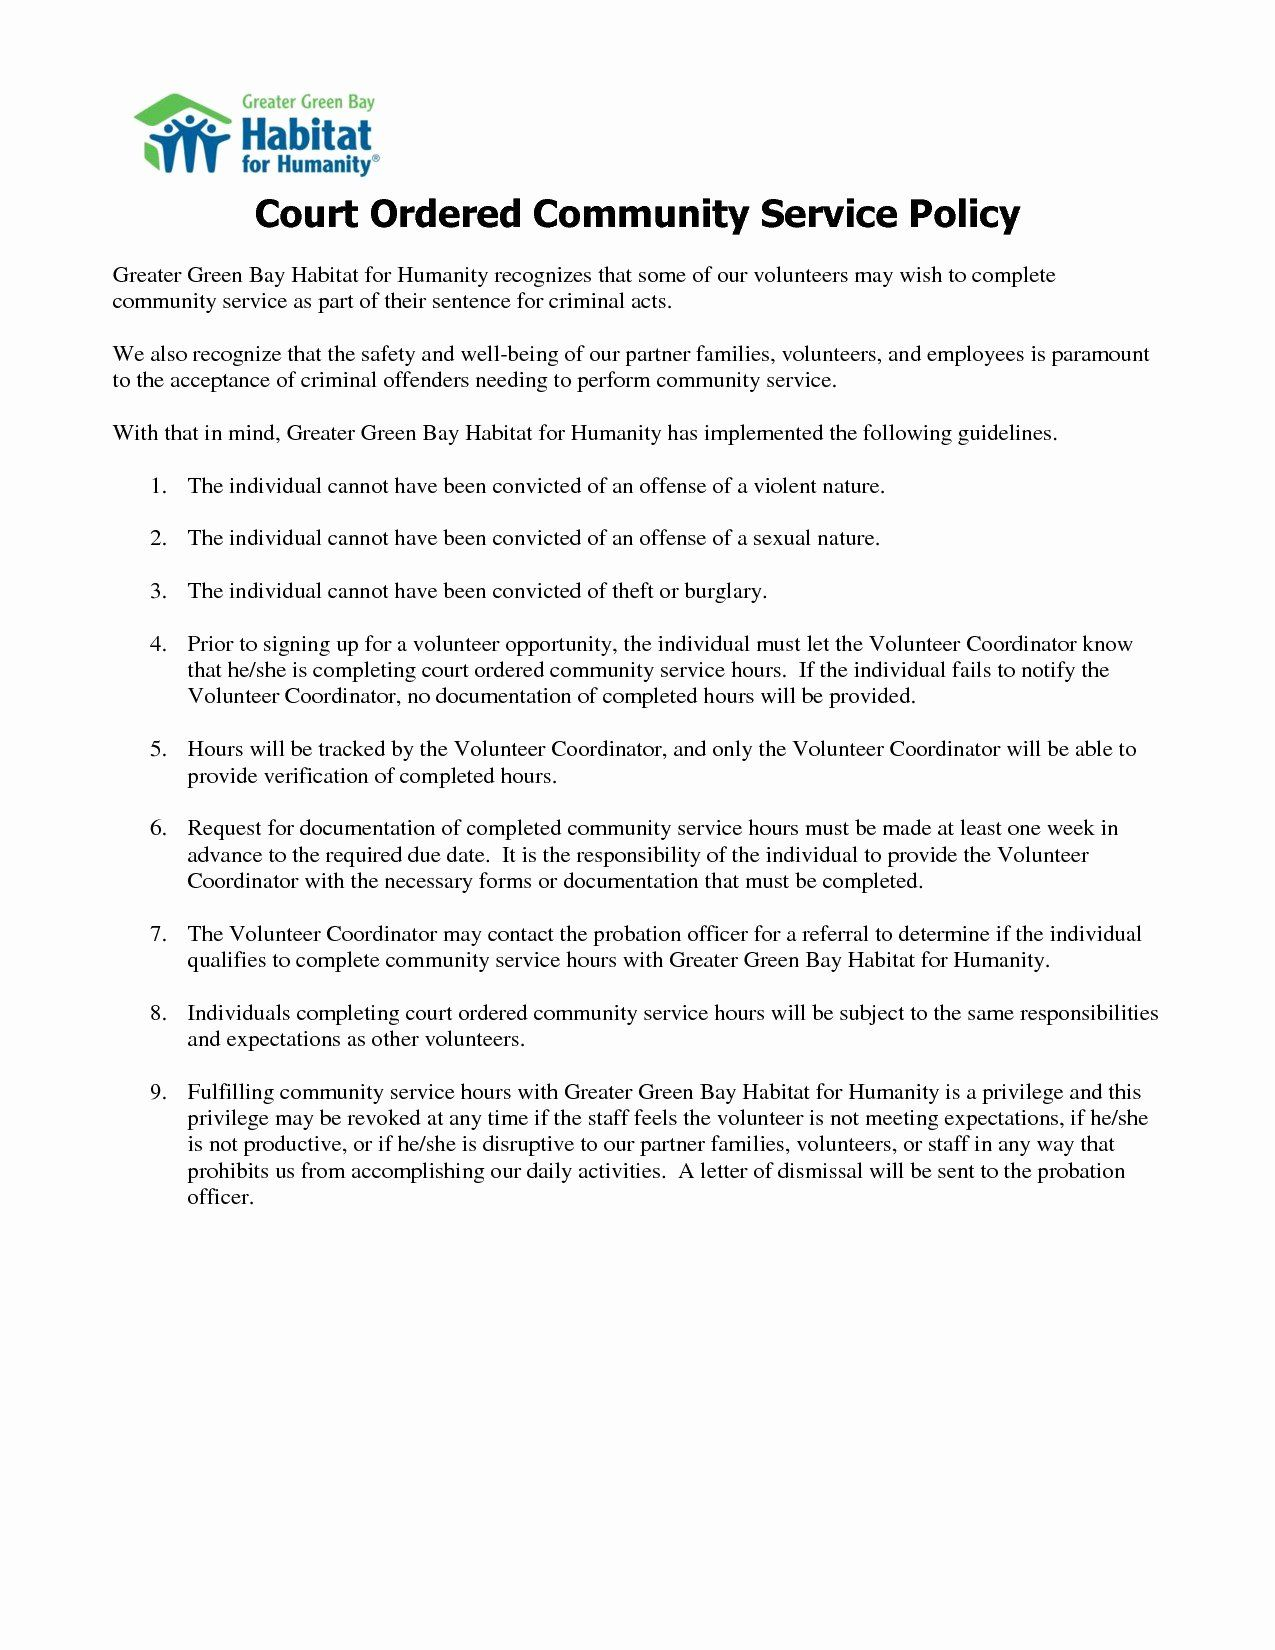 Community Service Letter Template Beautiful Court Ordered Munity Service Letter Templa Community Service Hours Doctors Note Template Printable Letter Templates